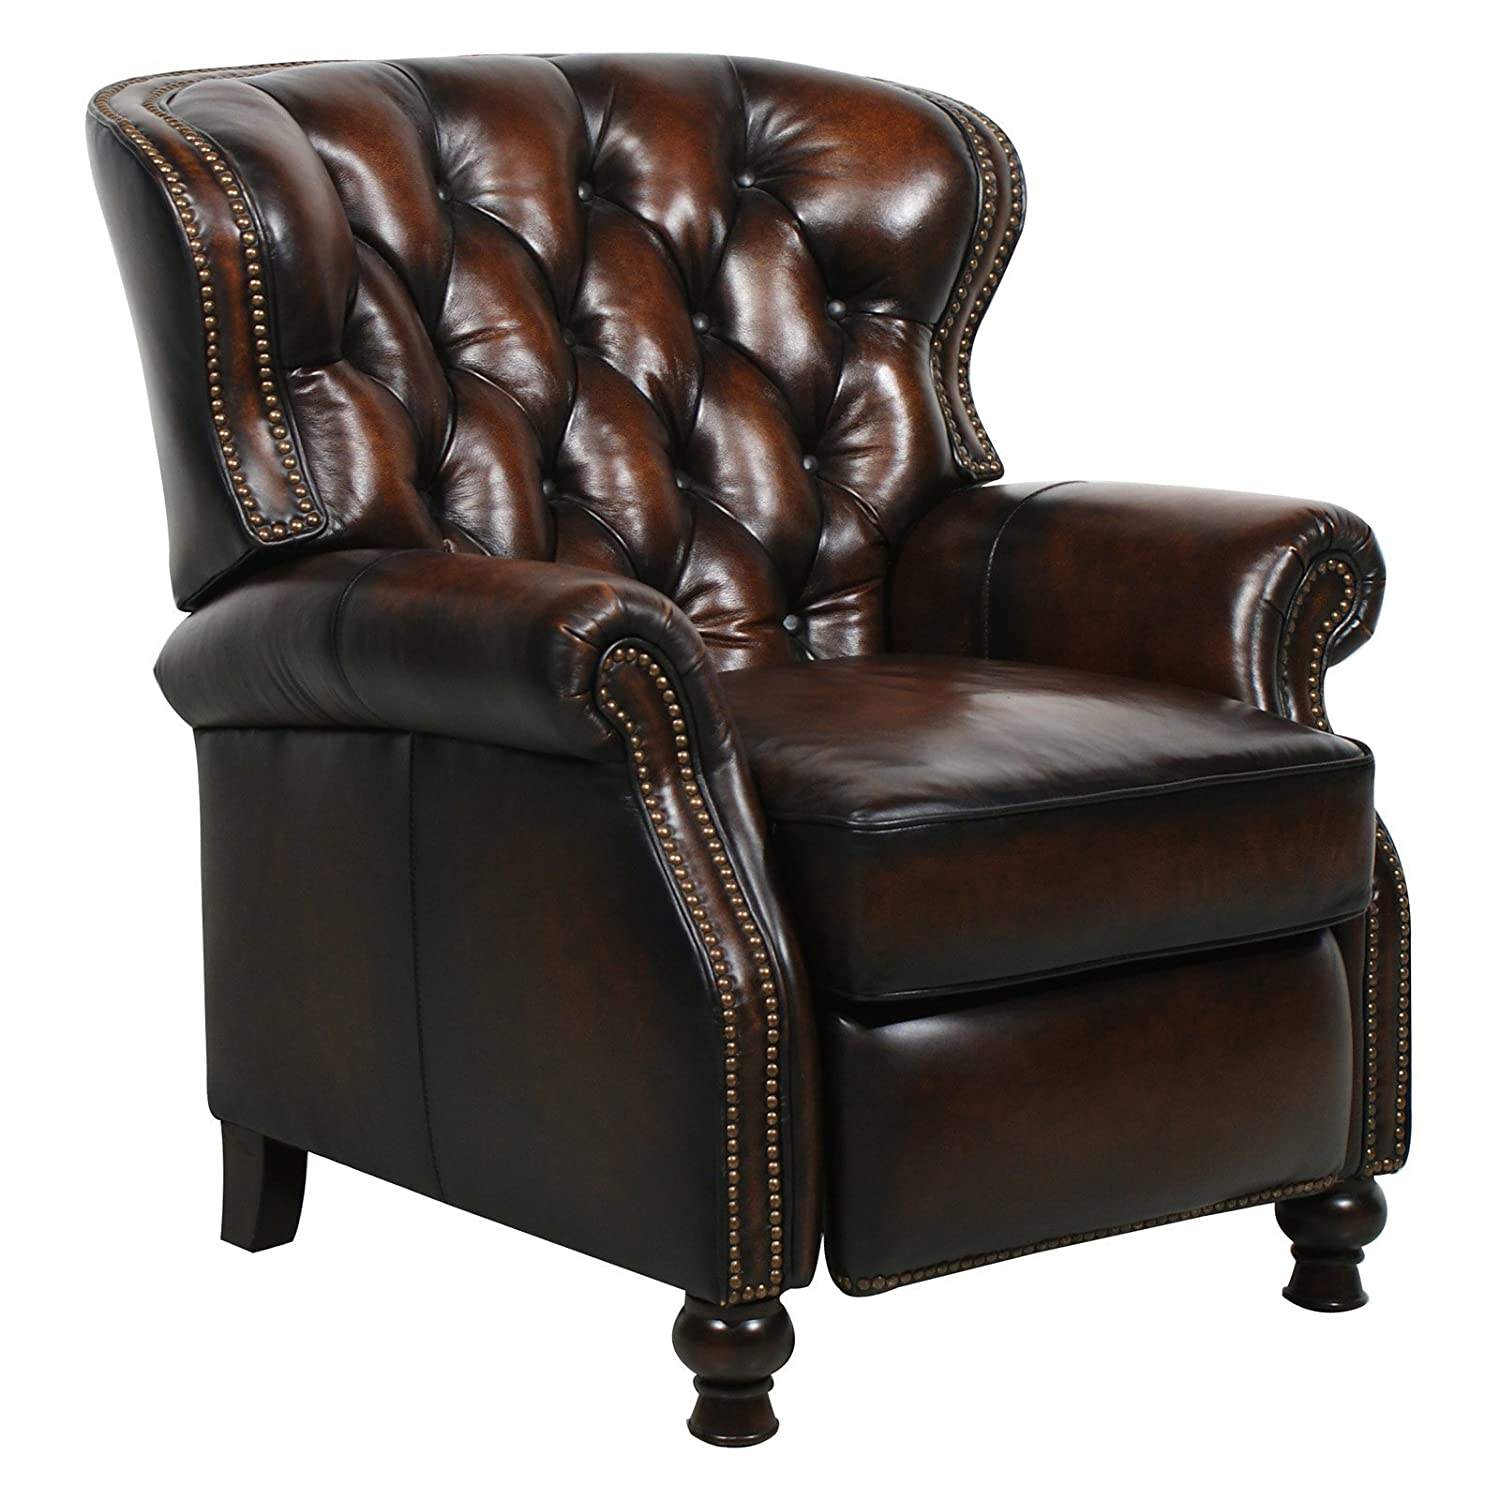 Amazon.com Presidental II Leather Wing Power Electric Recliner Chair by Barcalounger Kitchen u0026 Dining  sc 1 st  Amazon.com & Amazon.com: Presidental II Leather Wing Power Electric Recliner ... islam-shia.org